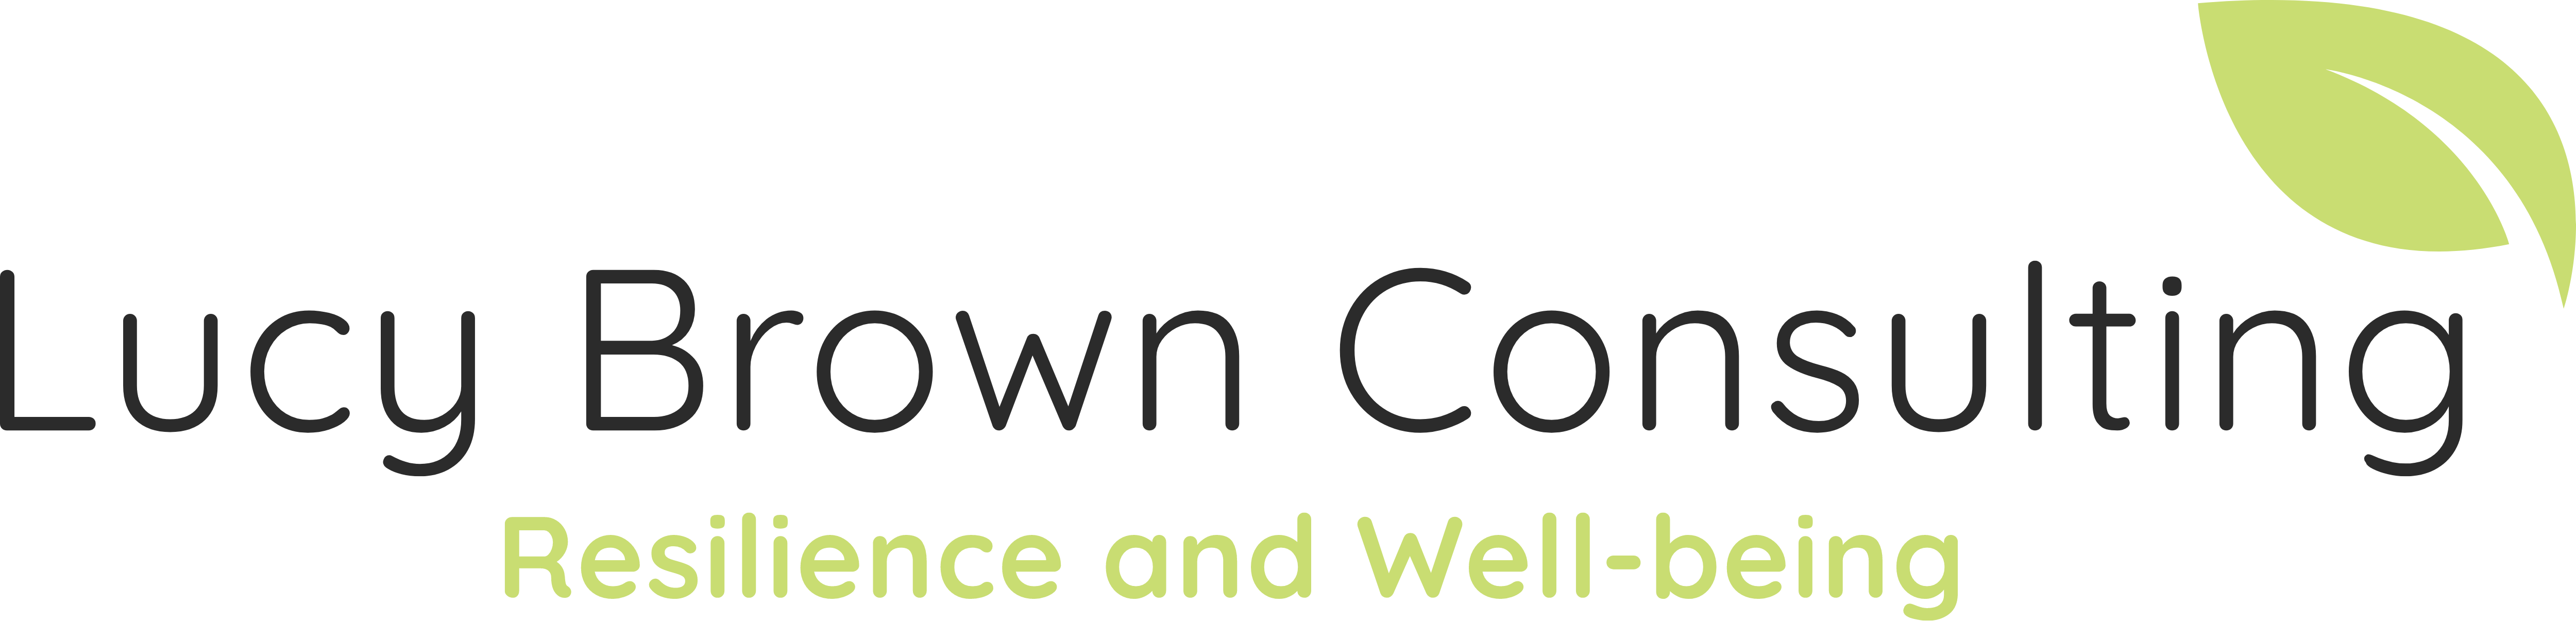 Lucy Brown Consulting